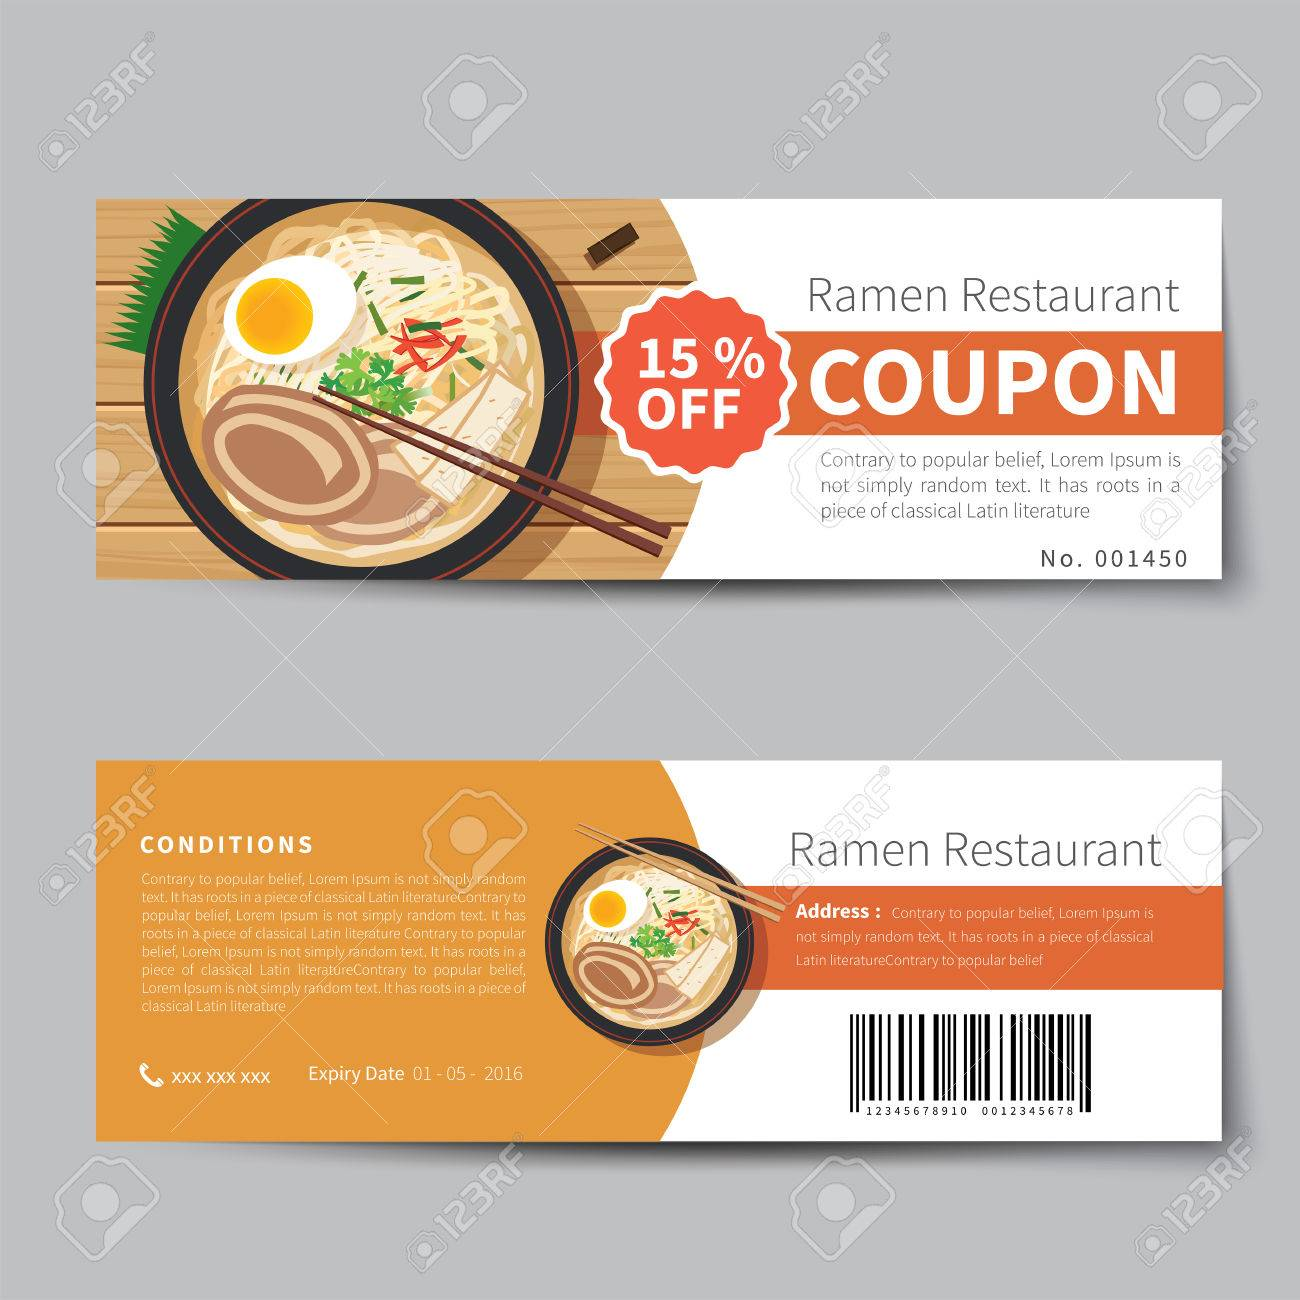 Design Templates Voucher Templates Restaurant Voucher Template 58388114  Japanese Food Coupon Discount Template Flat Design Stock